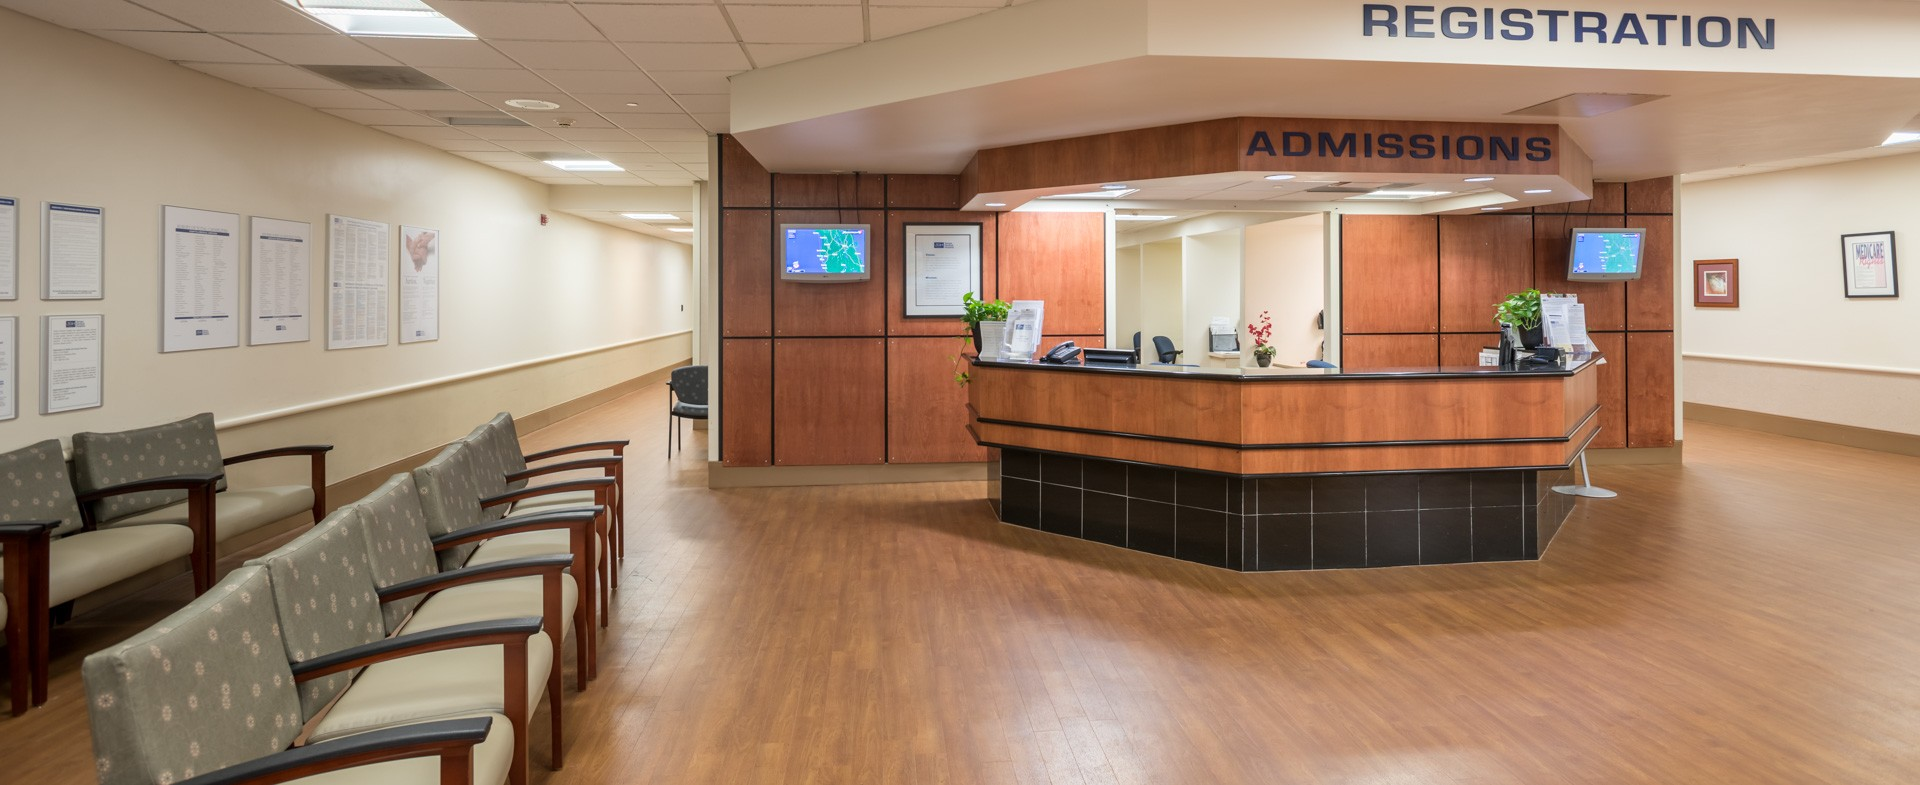 Tampa General Hospital main admissions